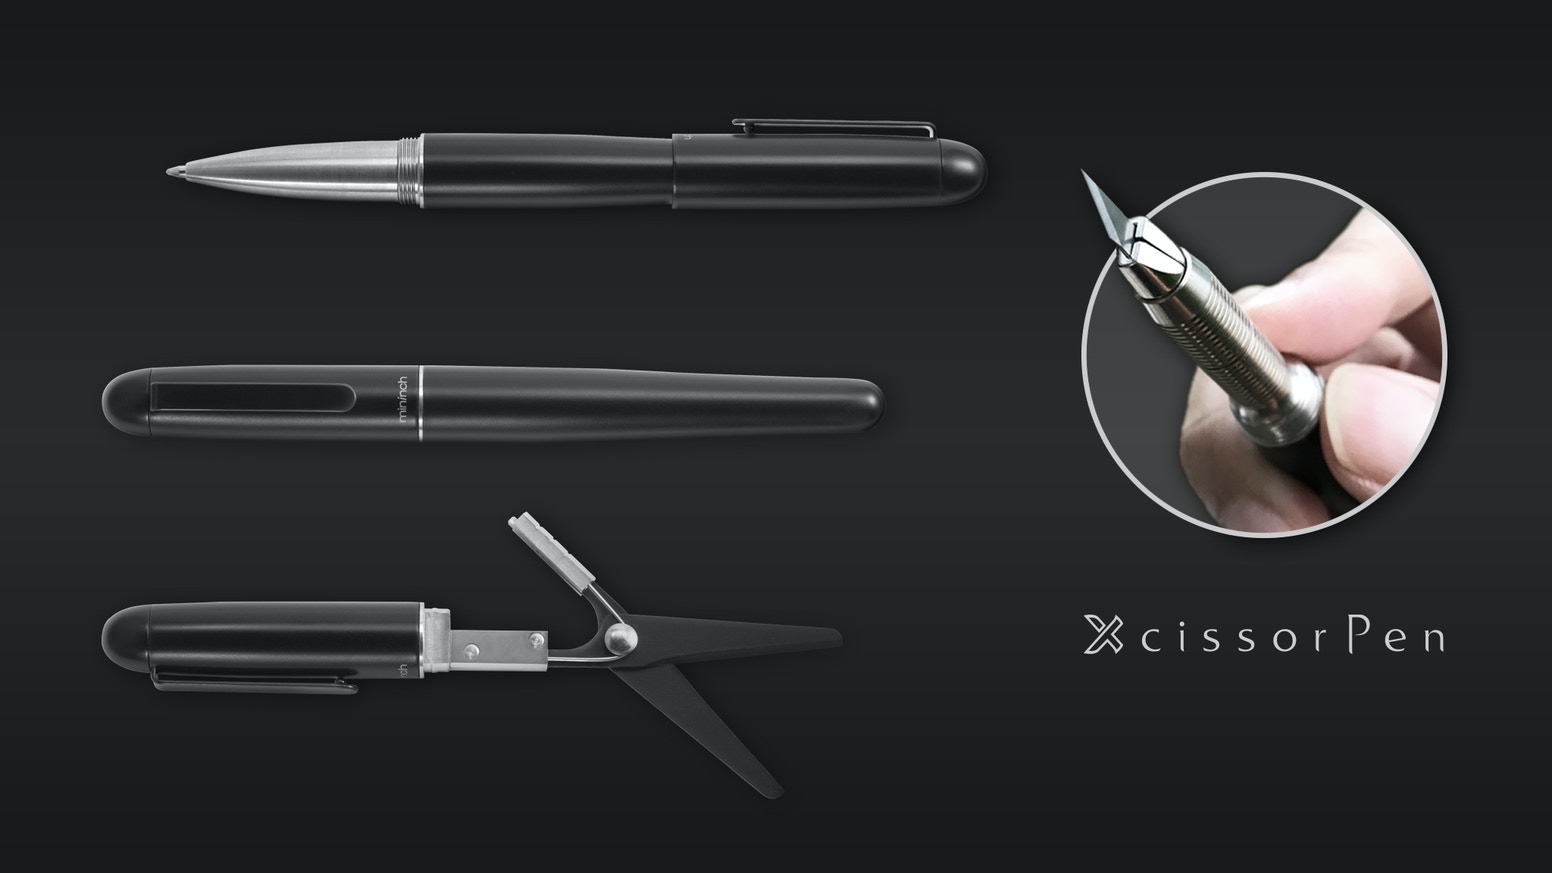 Pen + Scissors. A super-cool invention will get you on the cutting edge. You'll love the utility and modern look of this must-have EDC.